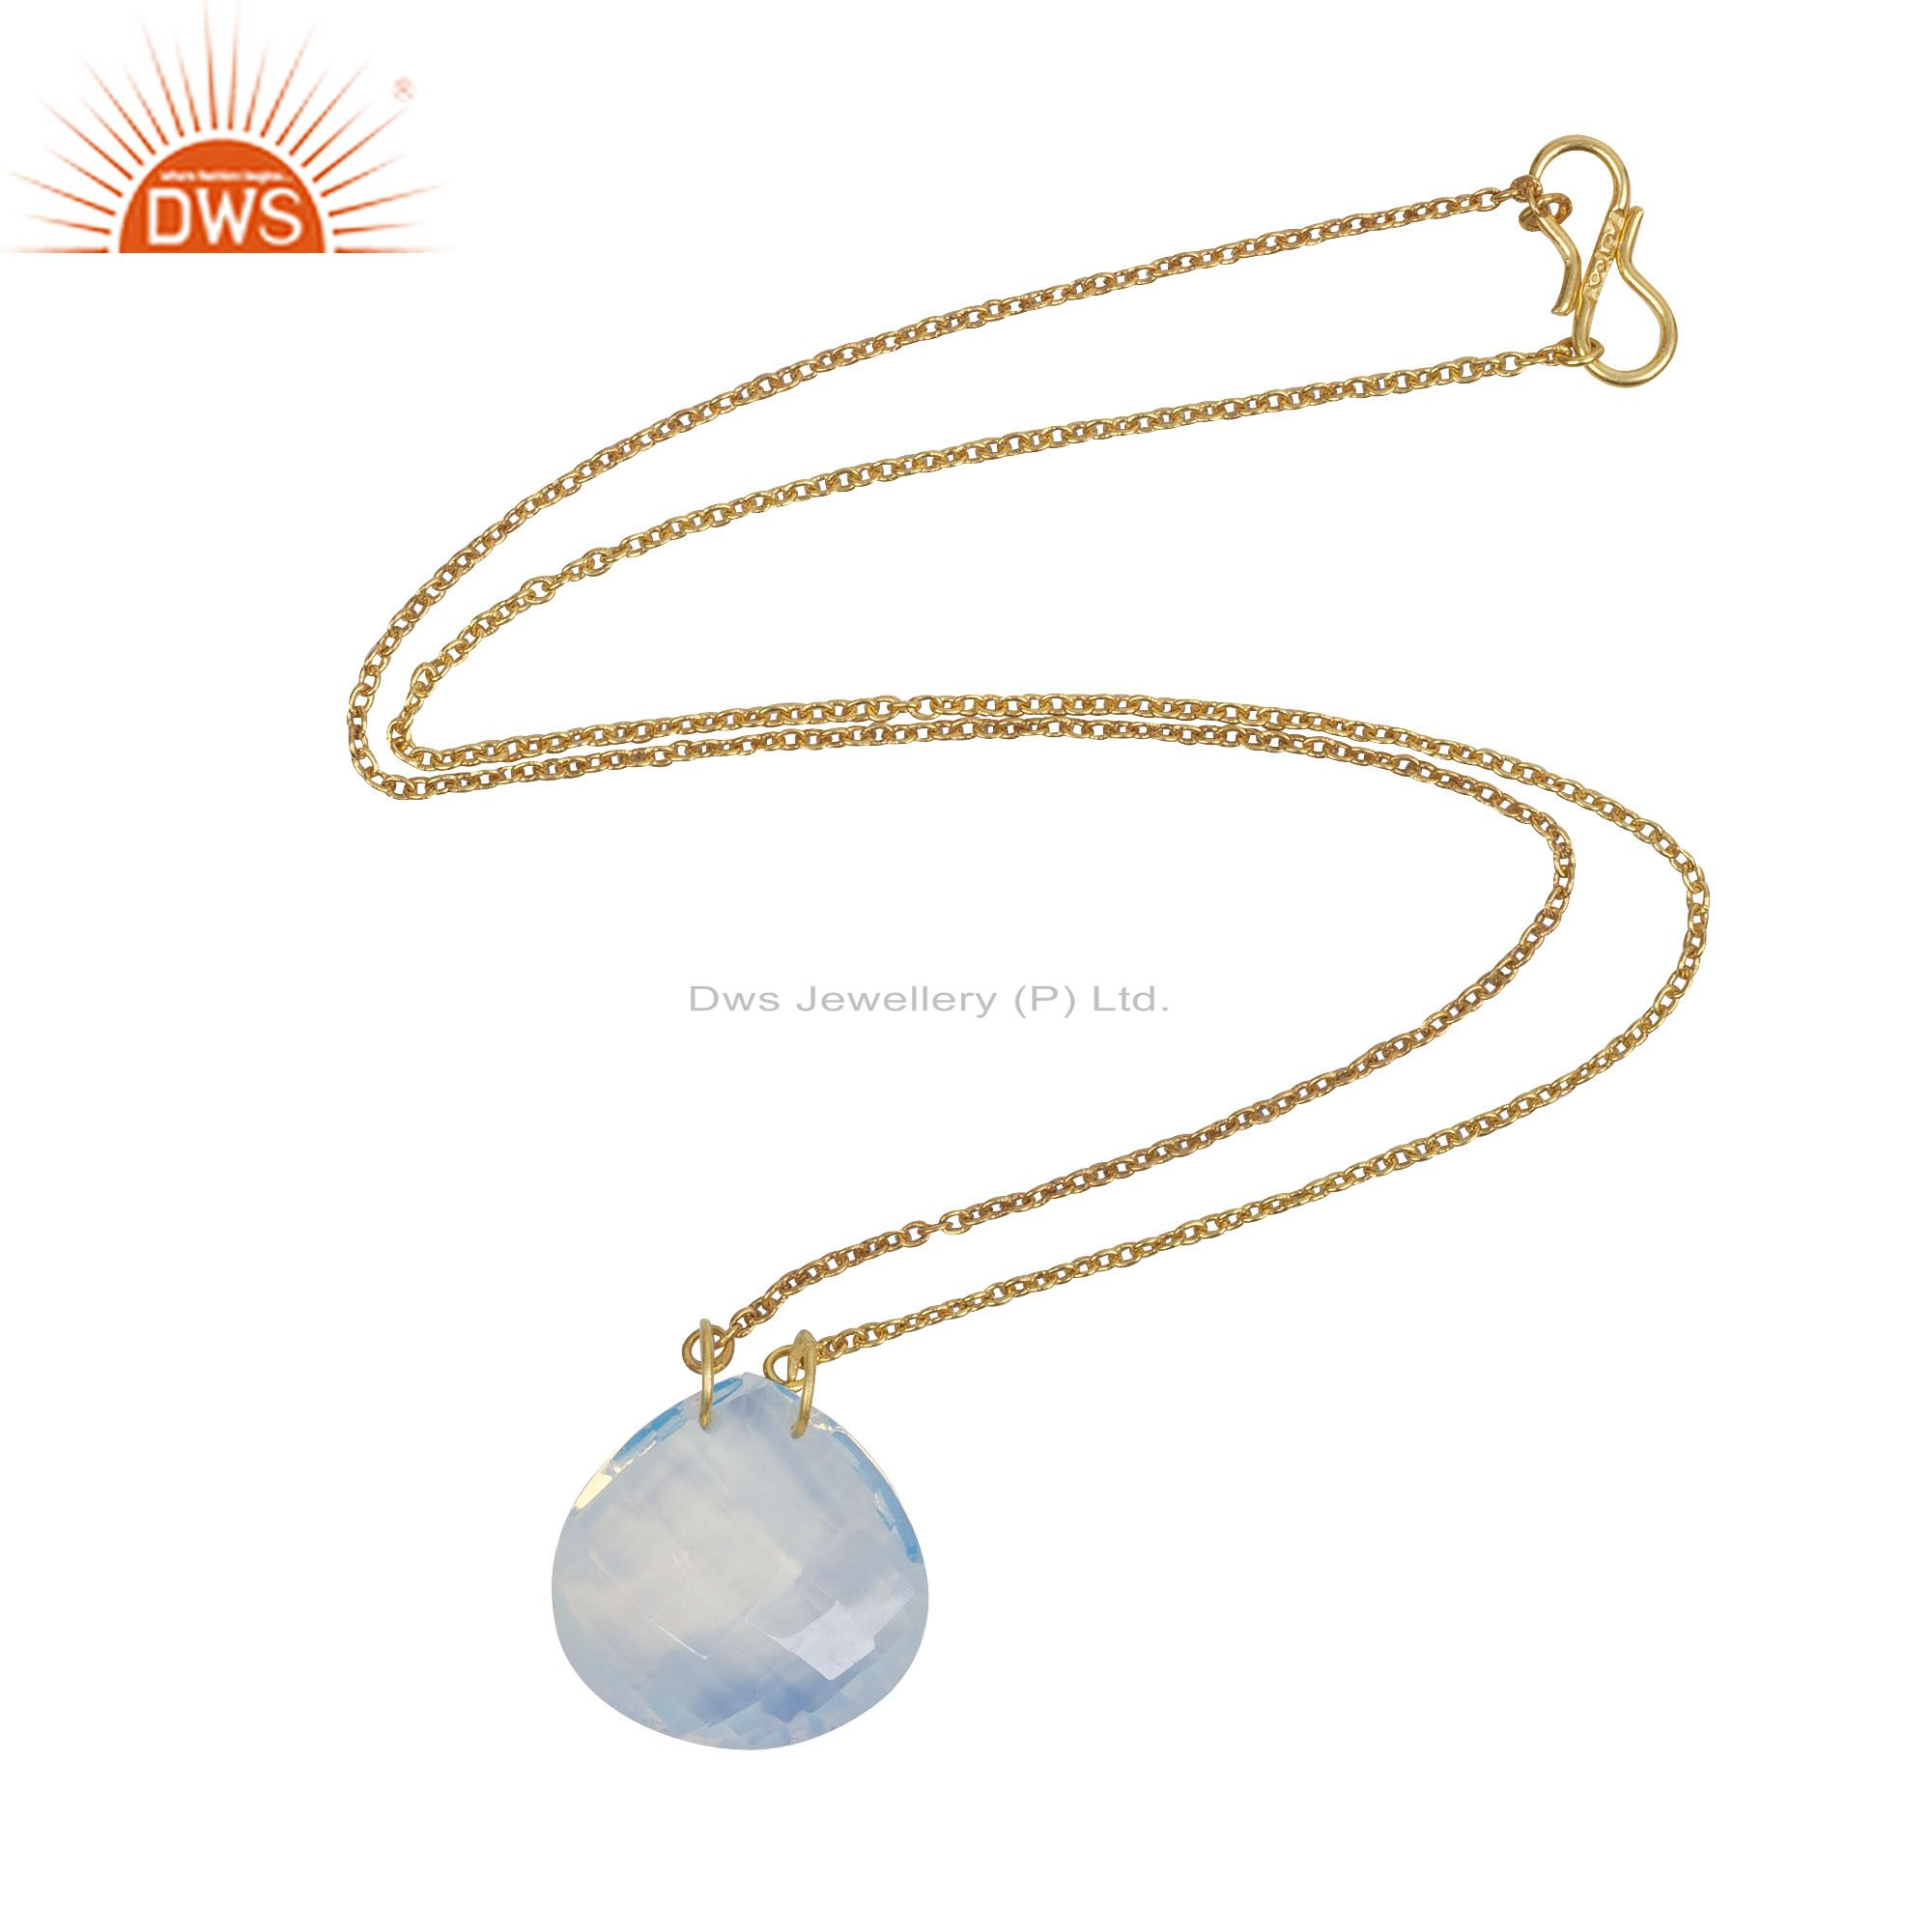 18k gold plated sterling silver opalite gemstone pendant chain necklace